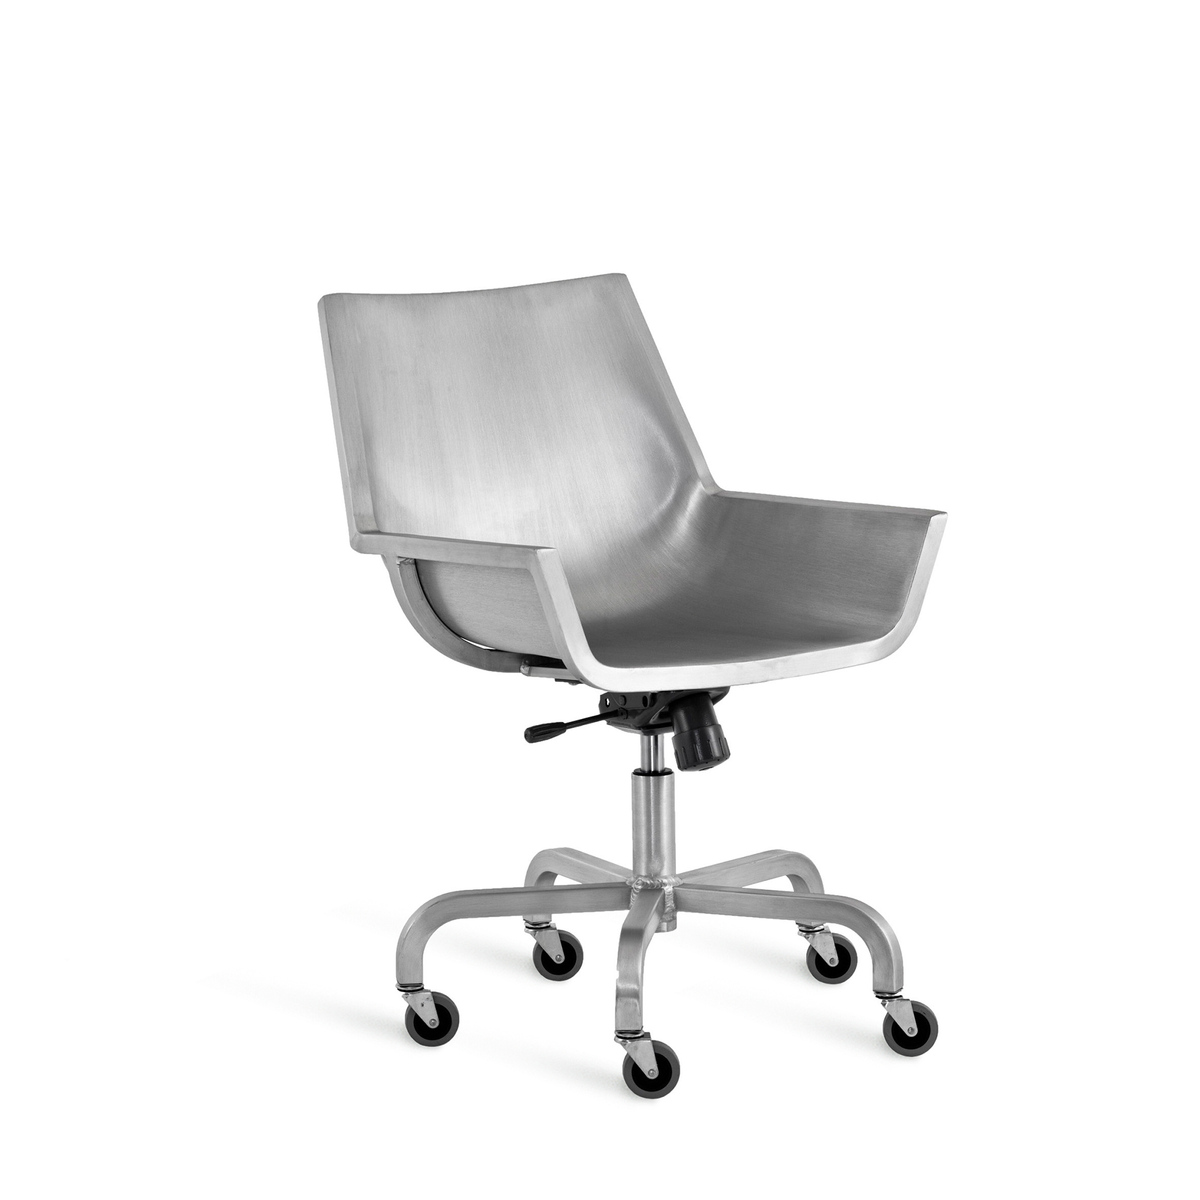 SEZZ SWIVEL CHAIR WITH CASTORS